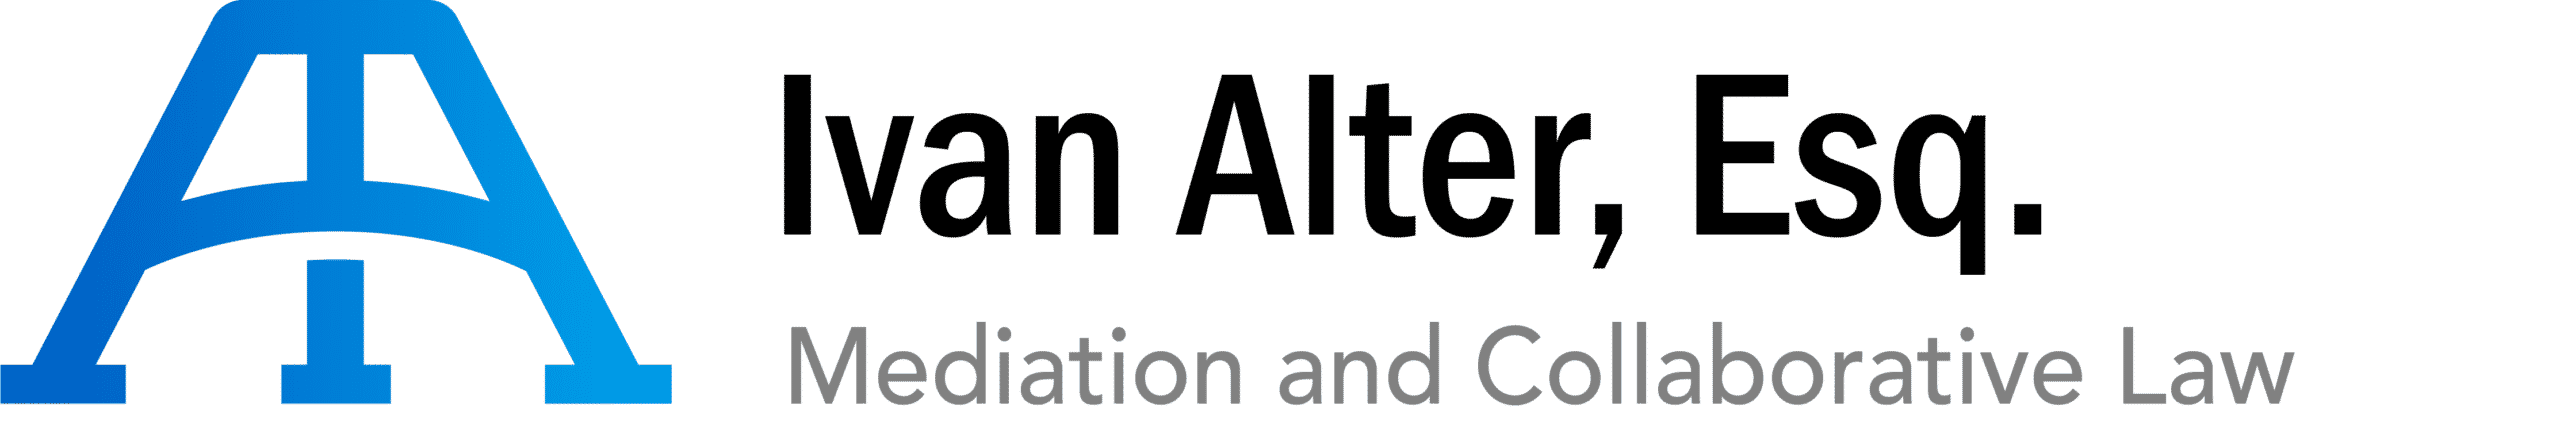 Ivan Alter mediation and collaborative law logo